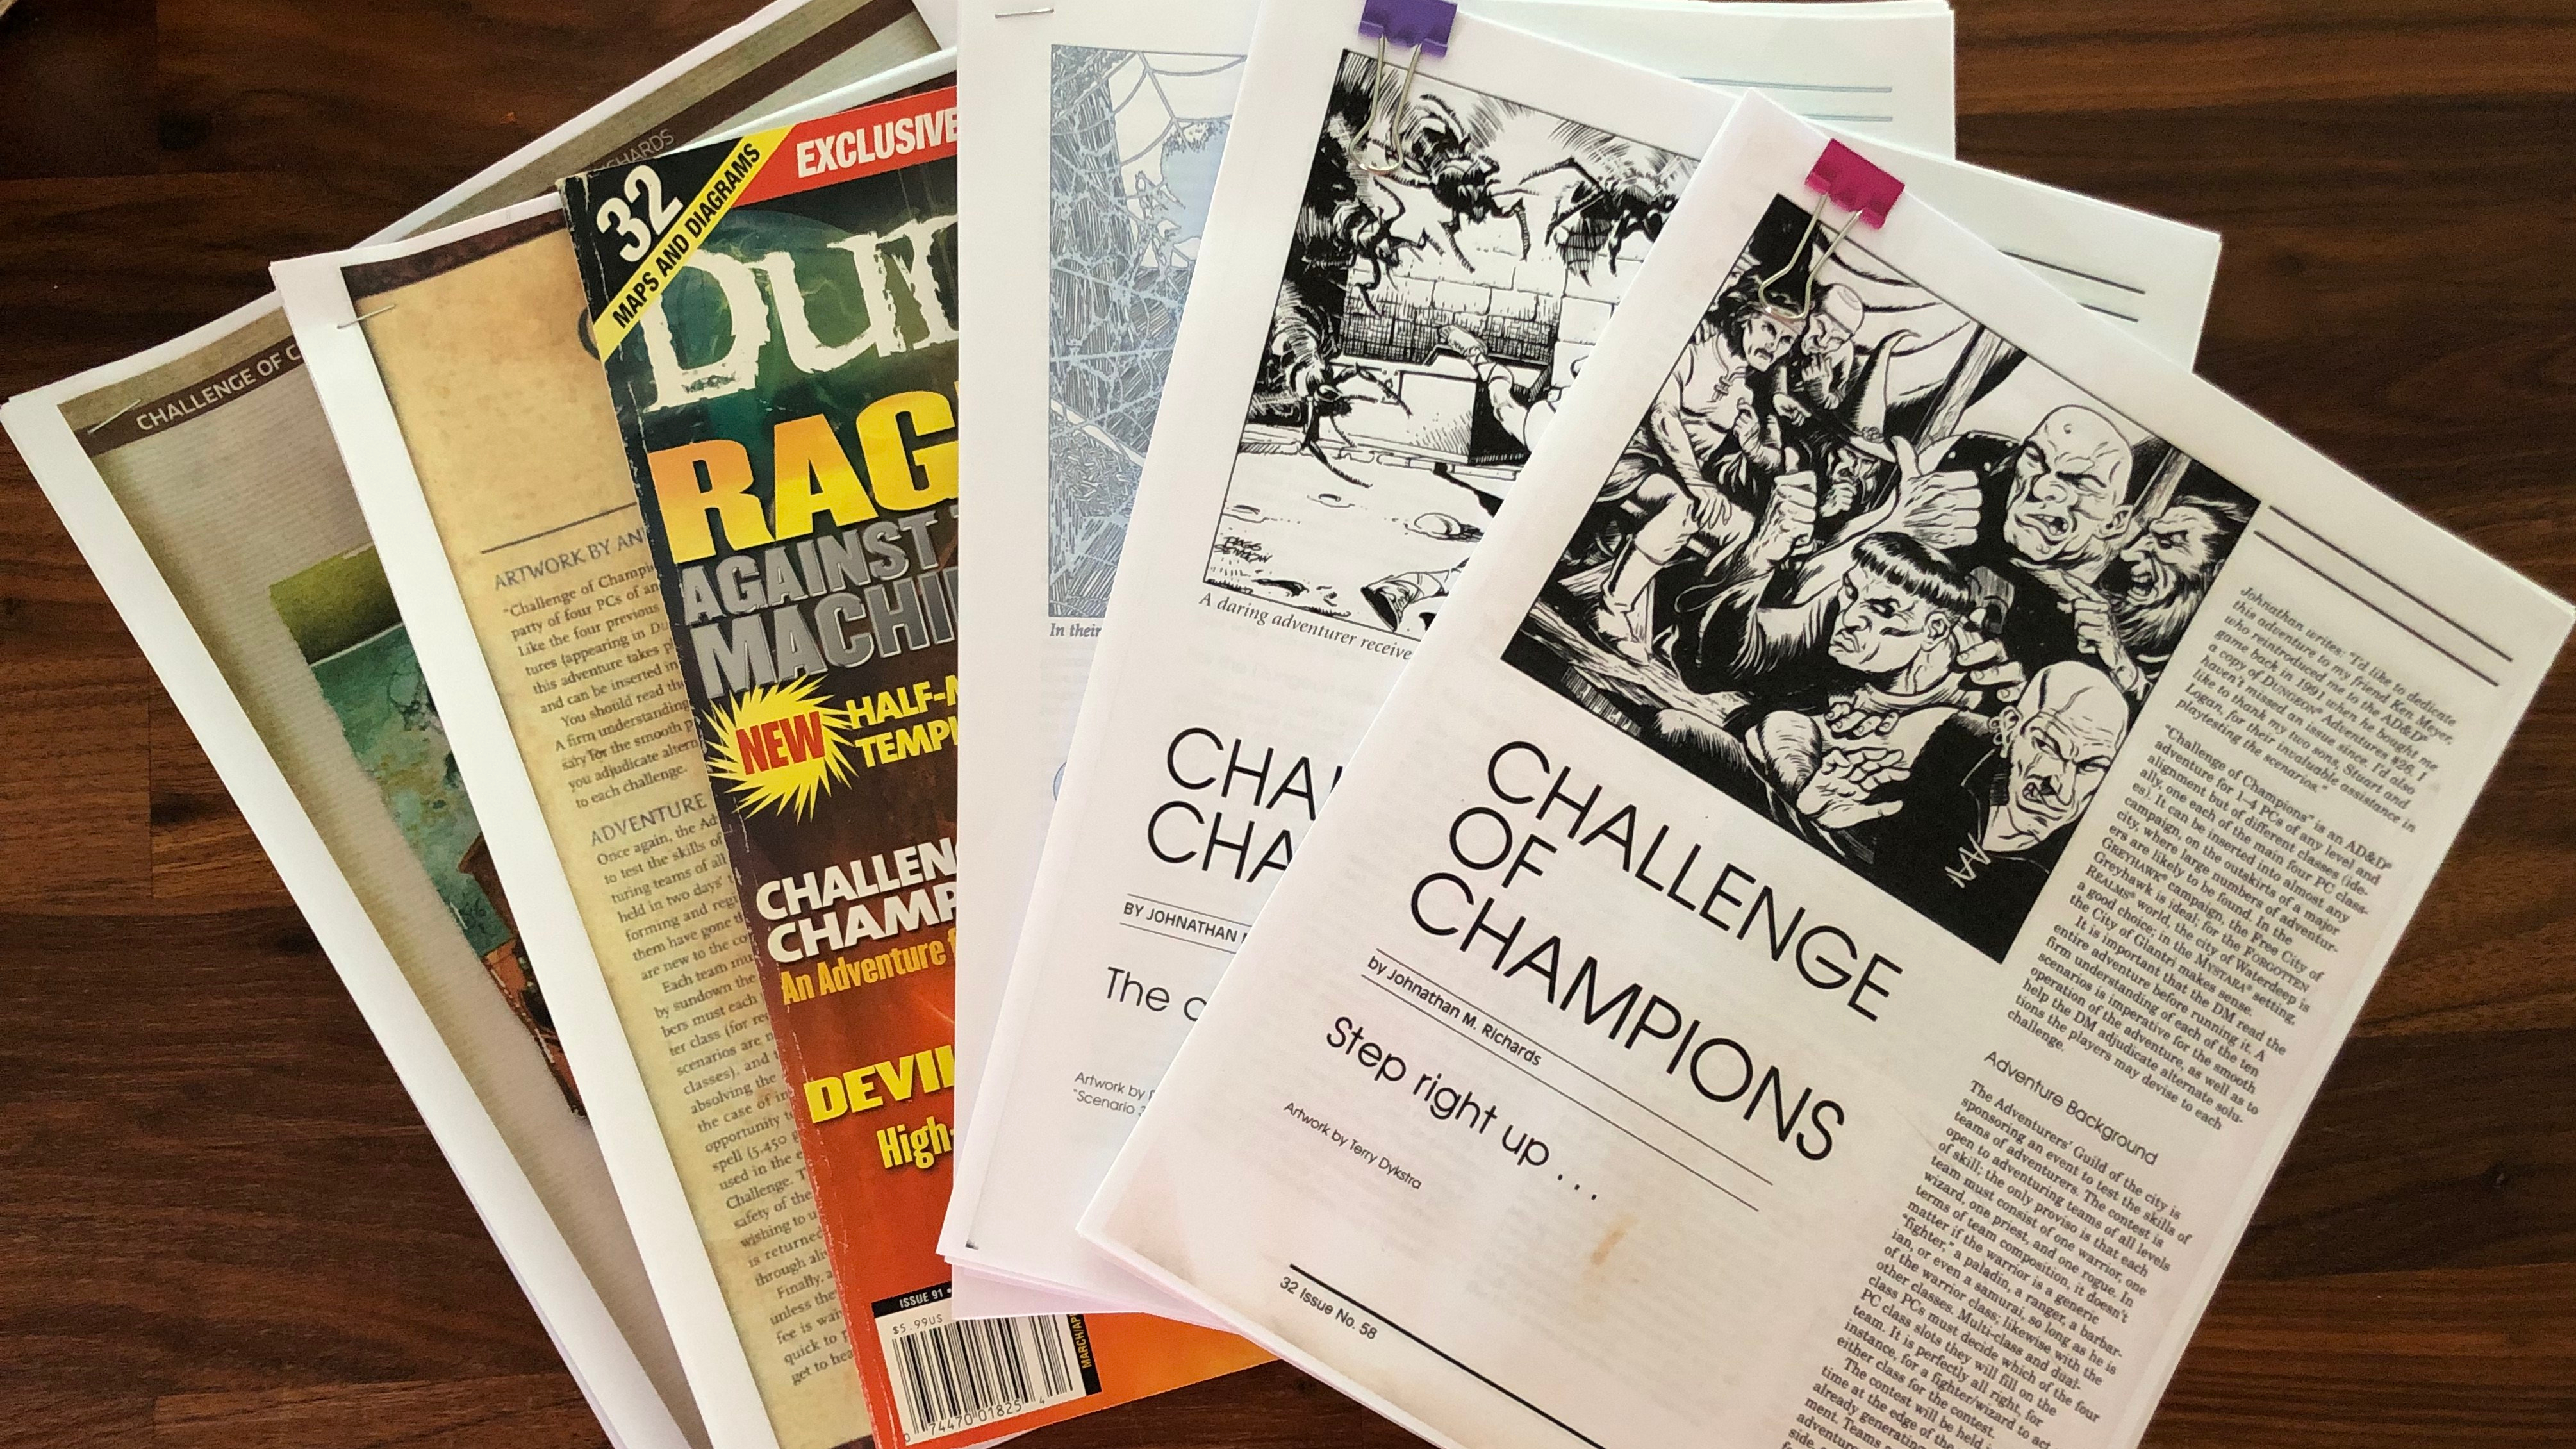 How to Create Level-Independent Challenges (a la Challenge of Champions) | DMDave Workshop